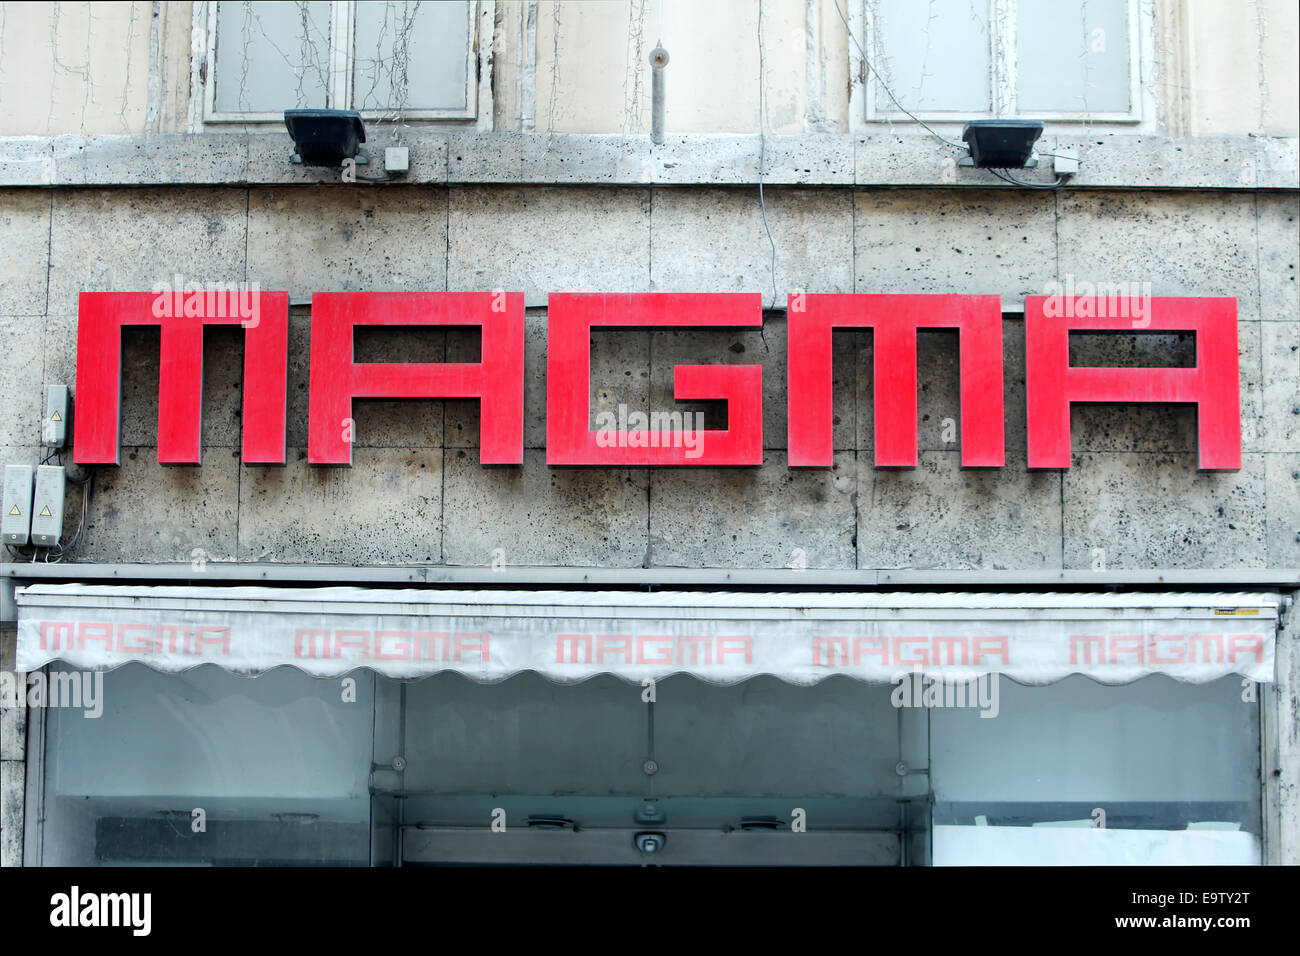 ZAGREB, CROATIA - FEBRUARY 24 : Close up of Magma logo on the wall above the store on February 24th, 2014 in Zagreb, - Stock Image